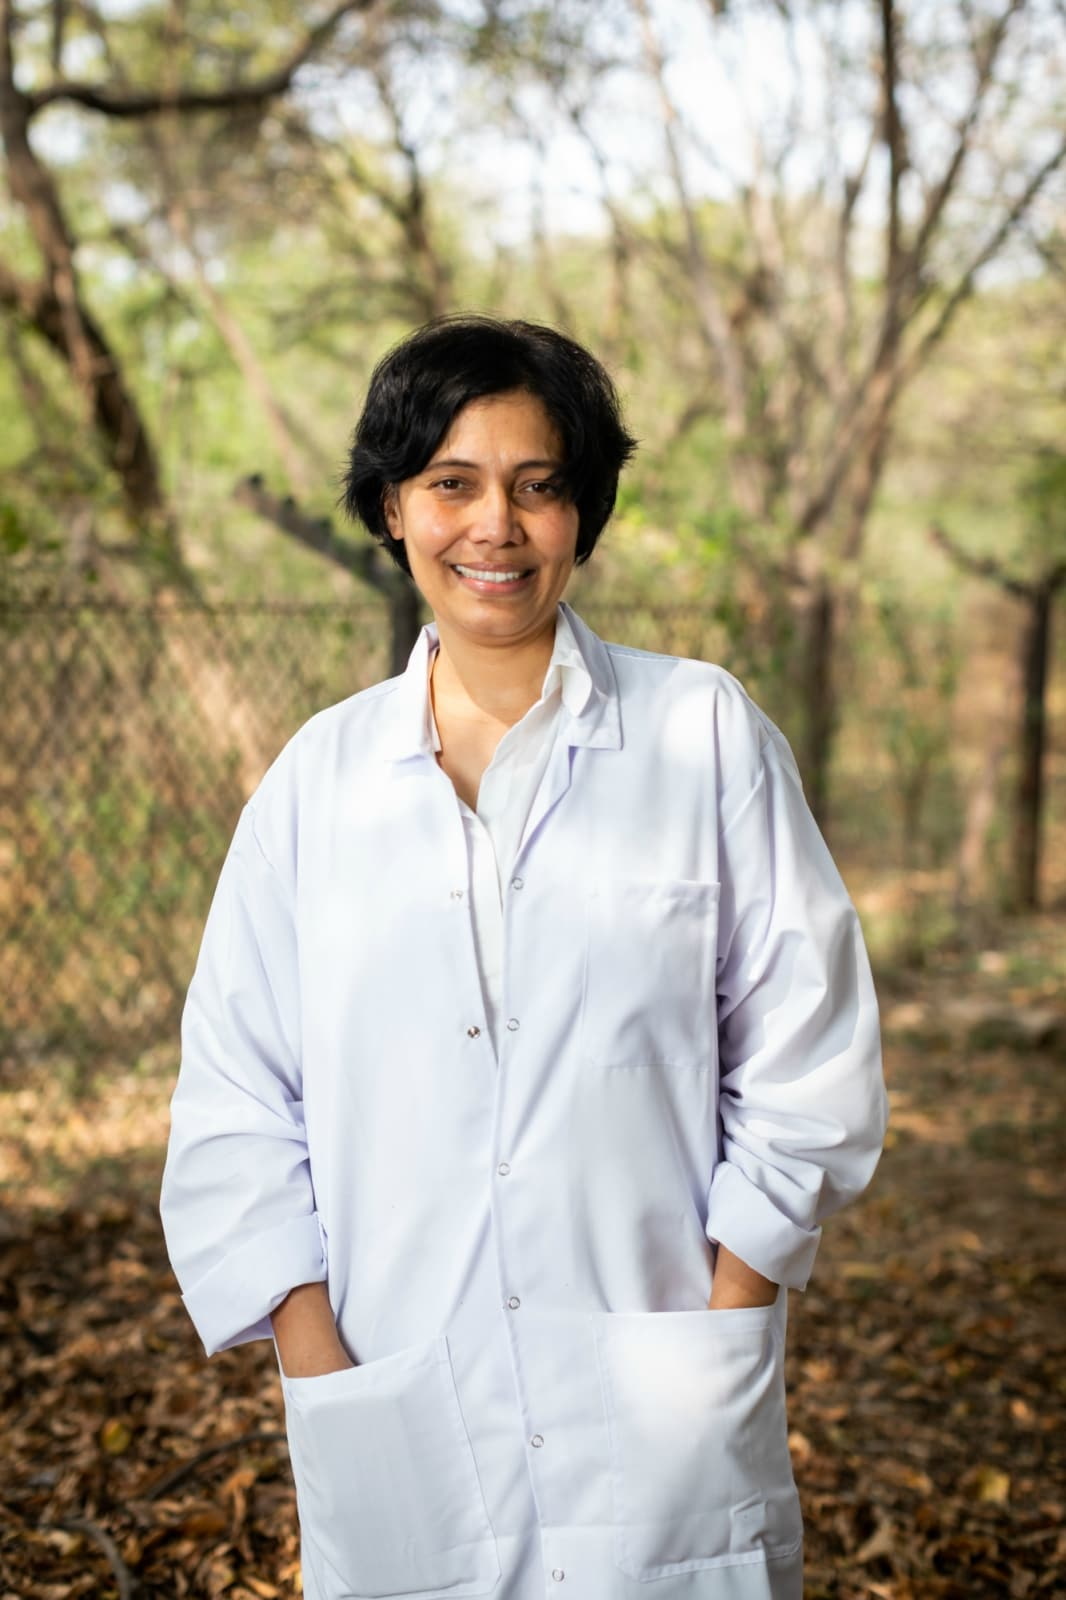 Subhadra Dravida: She is the founder and CEO of Transcell Biologics. The company is a complete Stem Cell Bank at Hyderabad, Telangana.